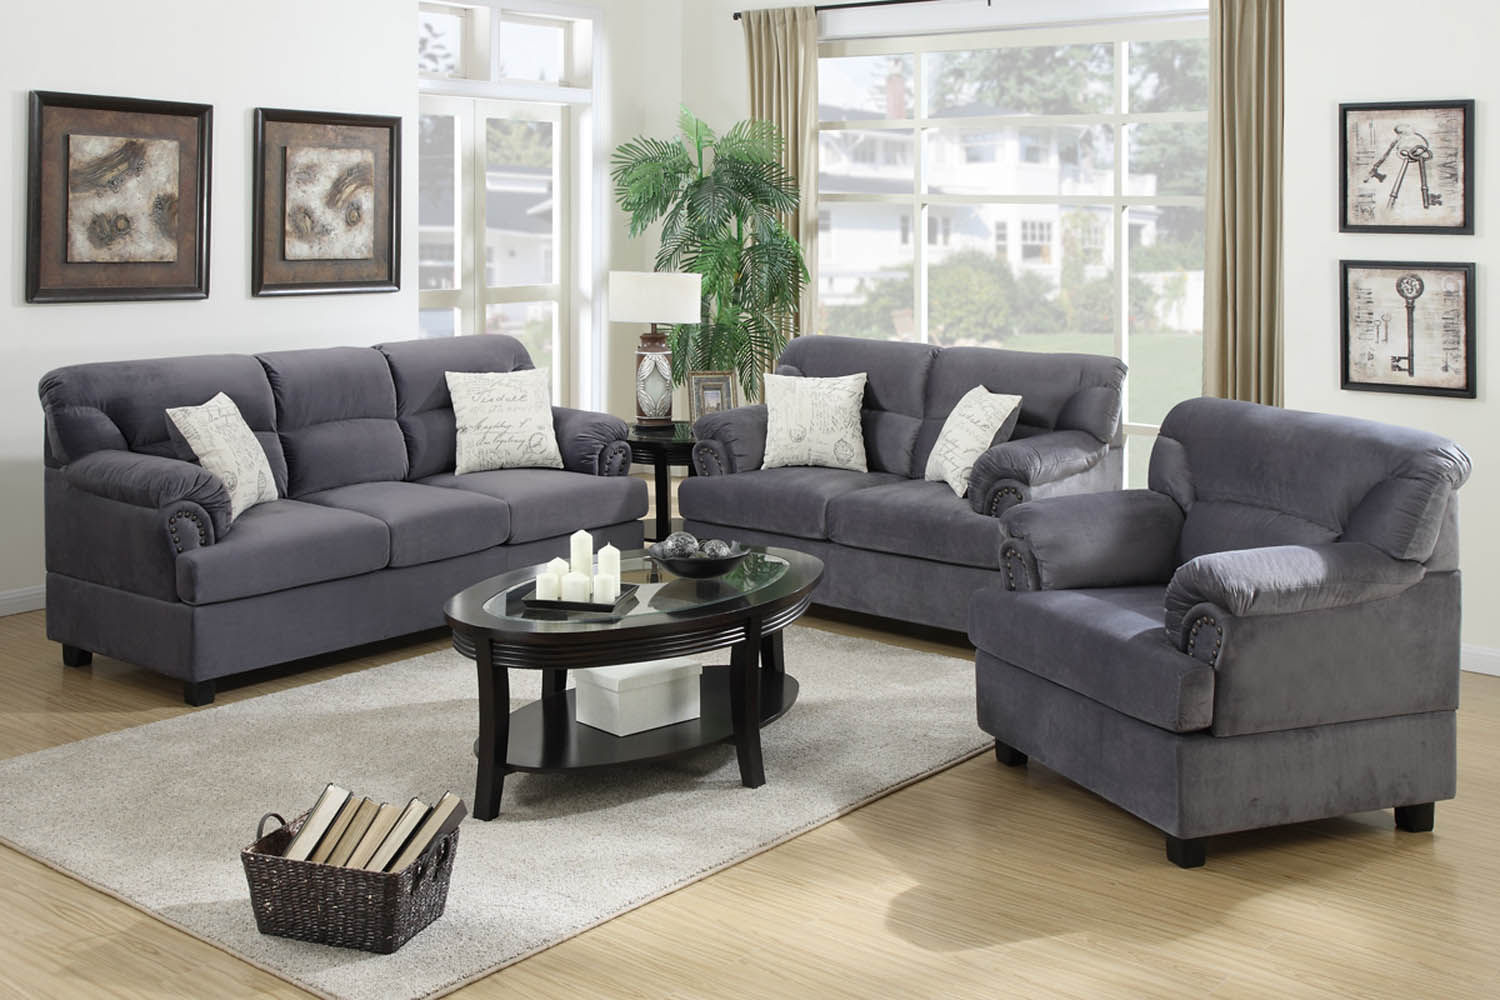 home living room 3 piece grey miro fiber suede sofa set